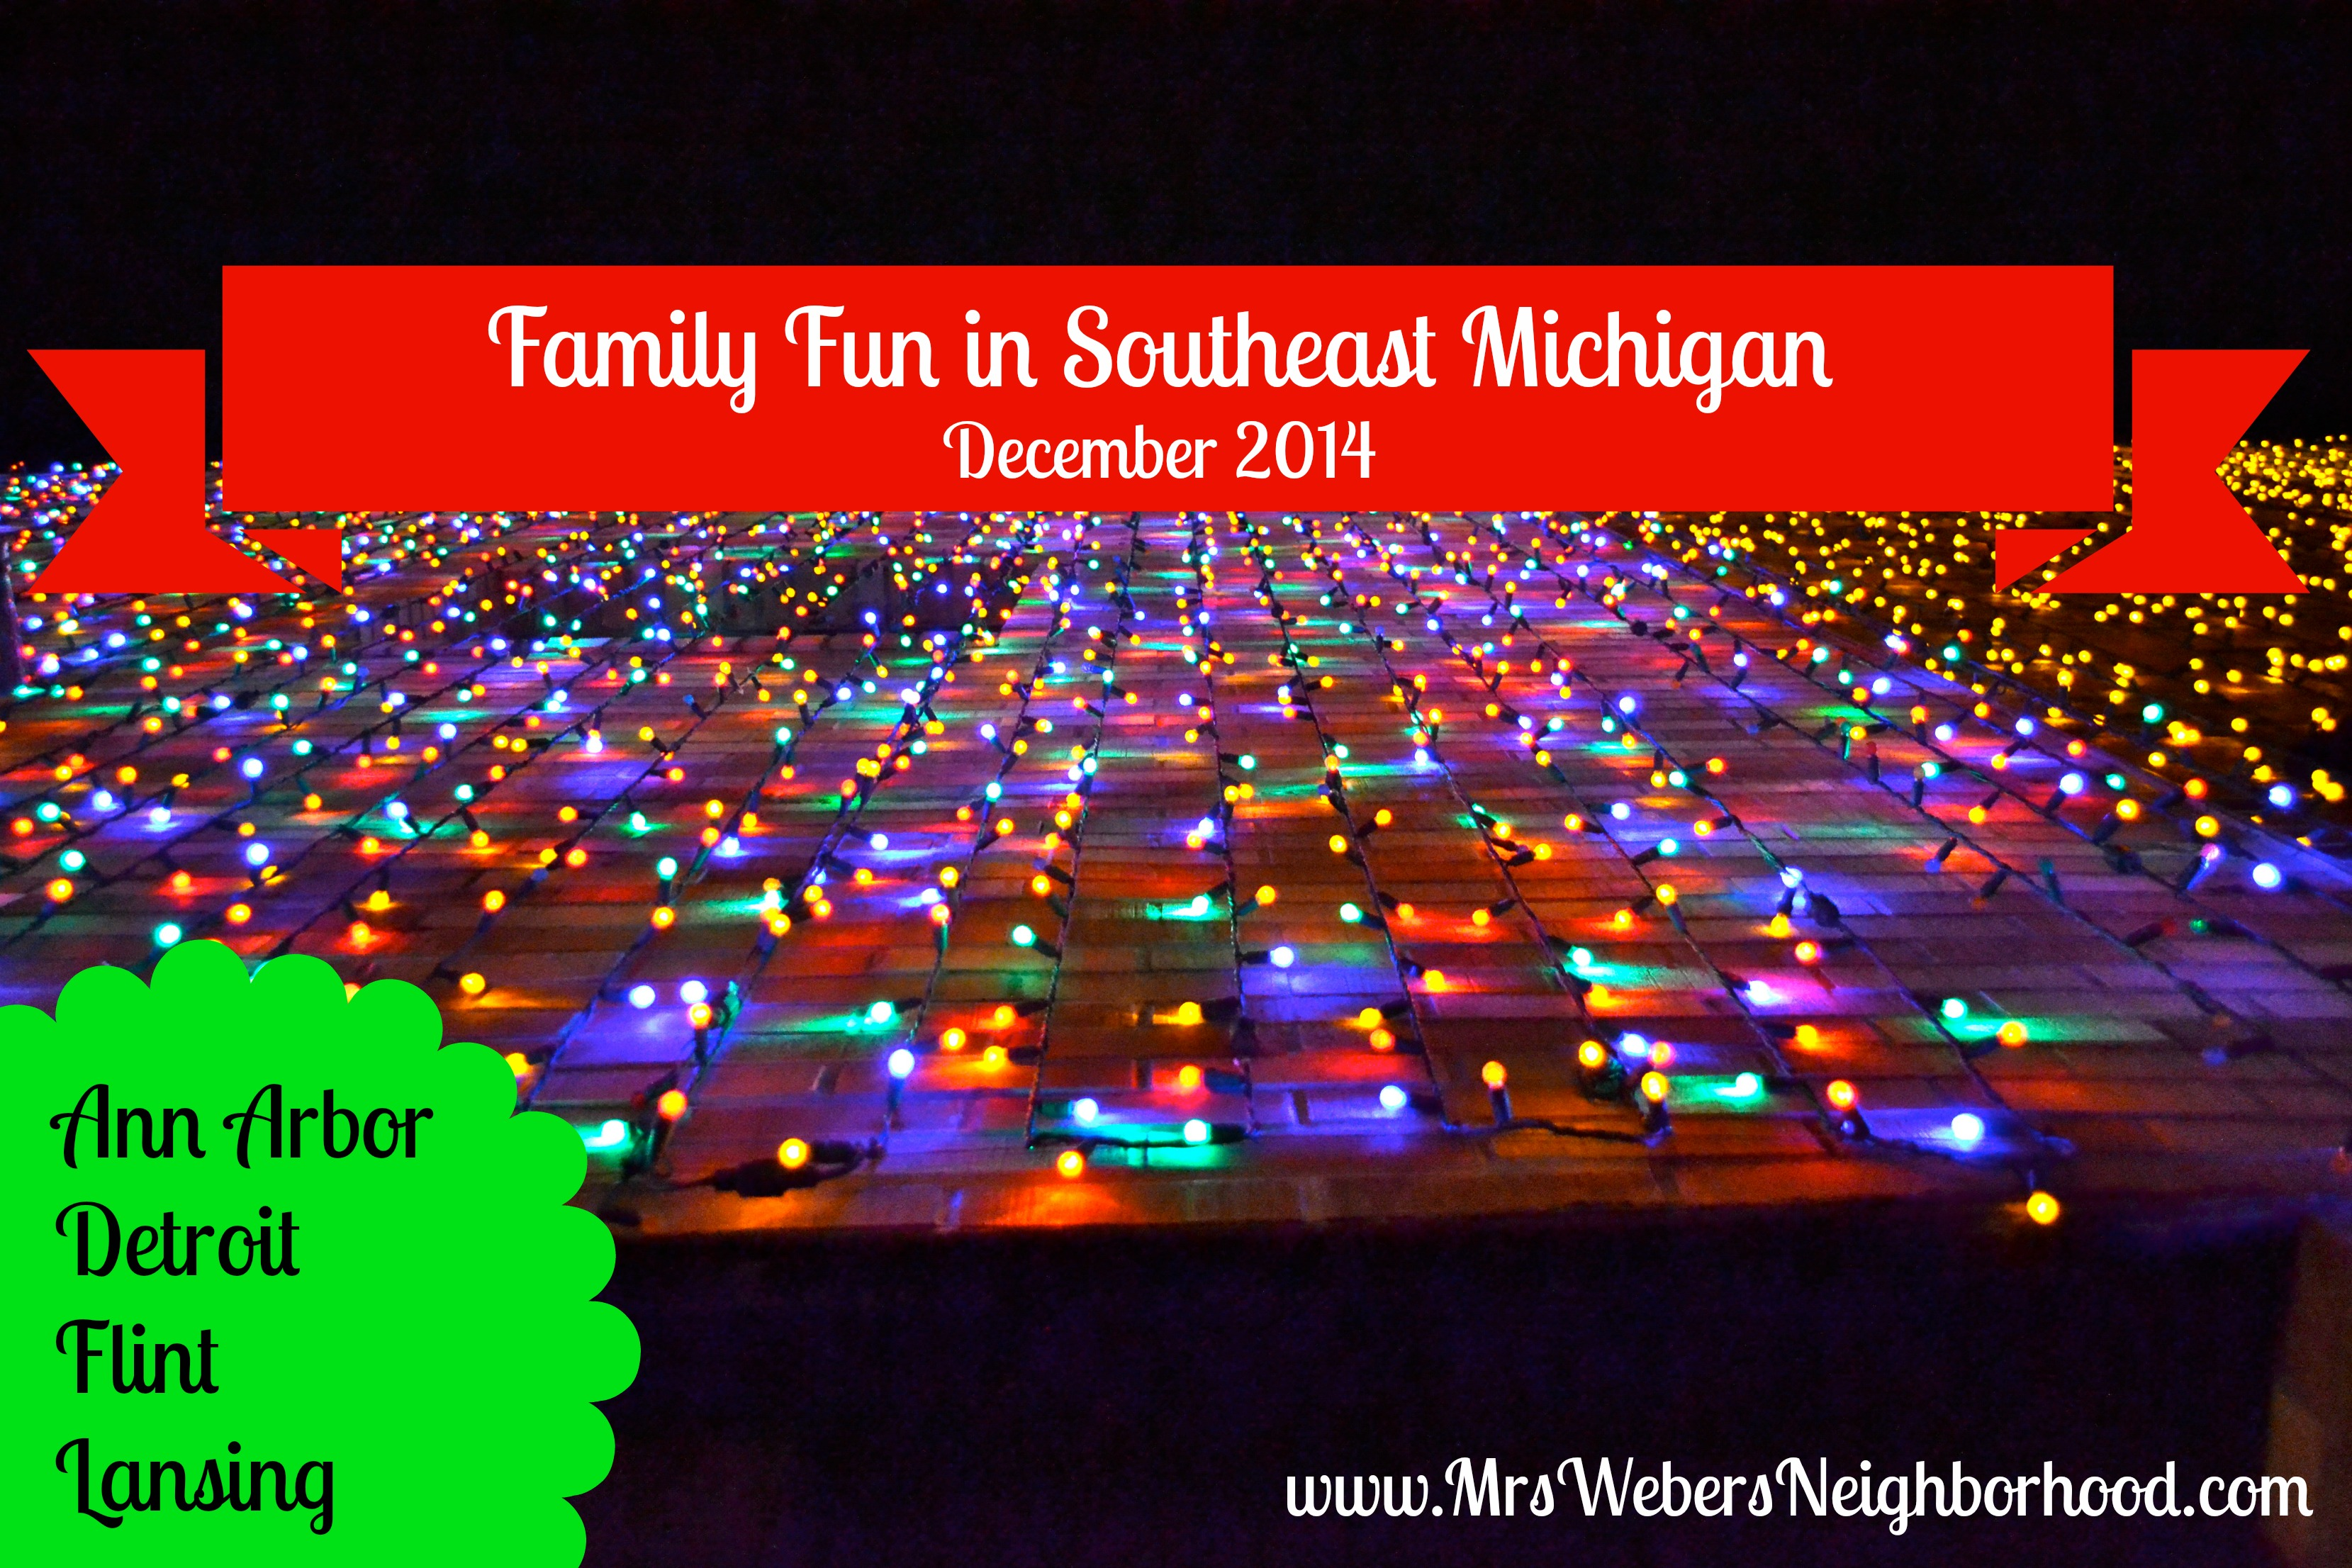 Family Fun in Southeast Michigan in December 2014